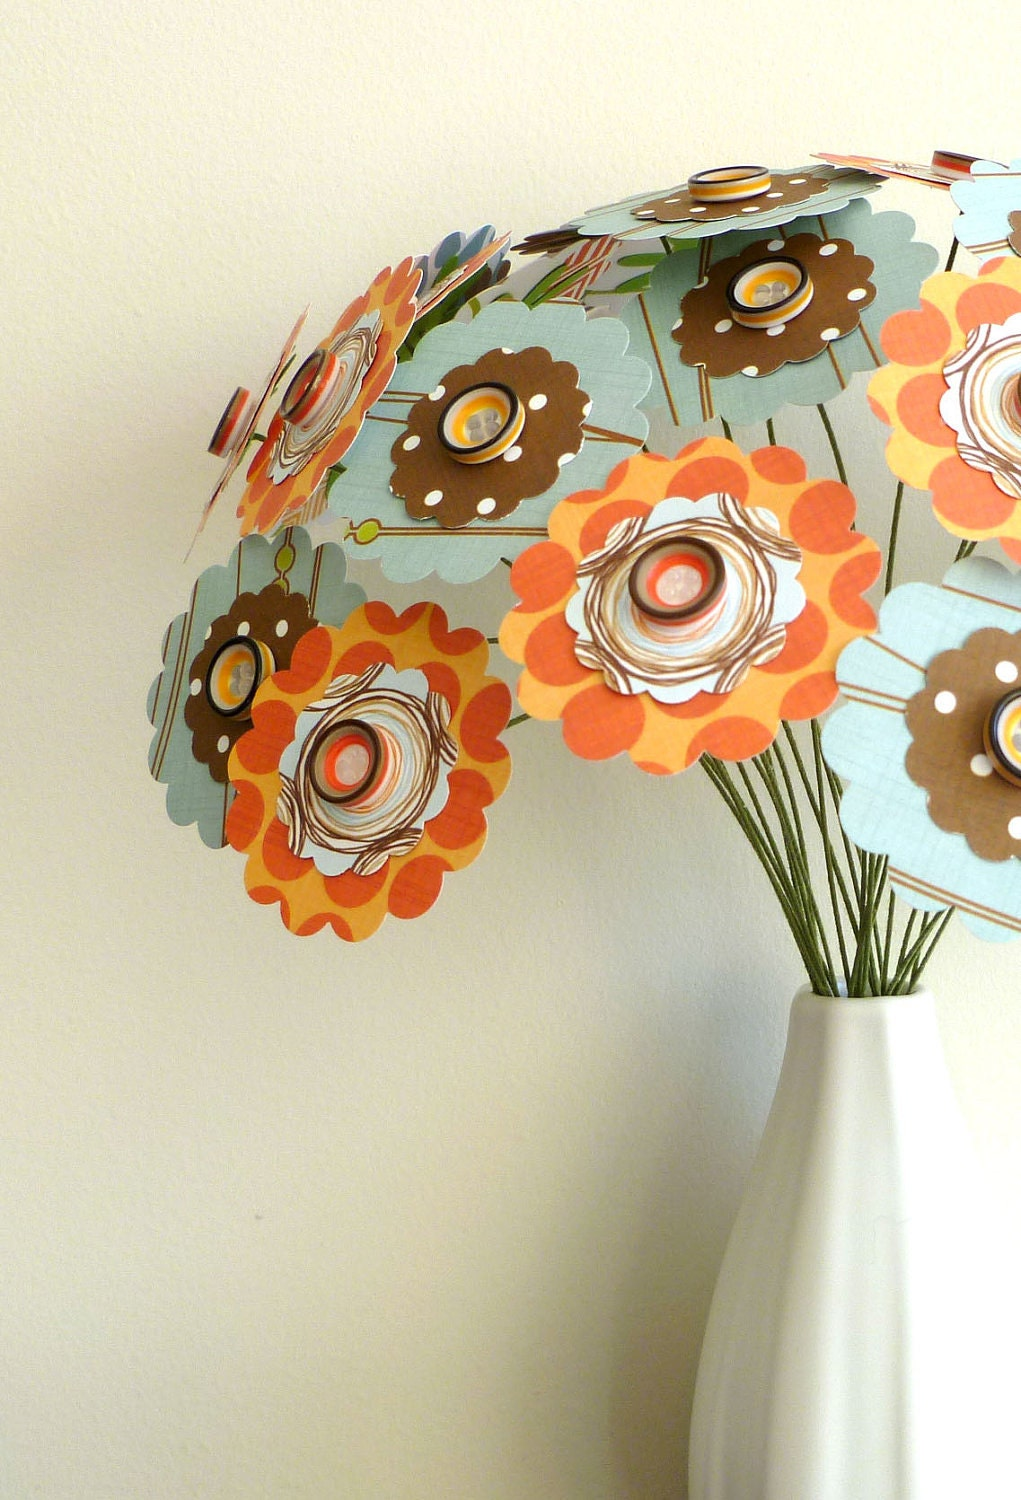 "Paper Flower Bouquet - Patterned Orange Blue and Brown 24 stems 11"" Retro"